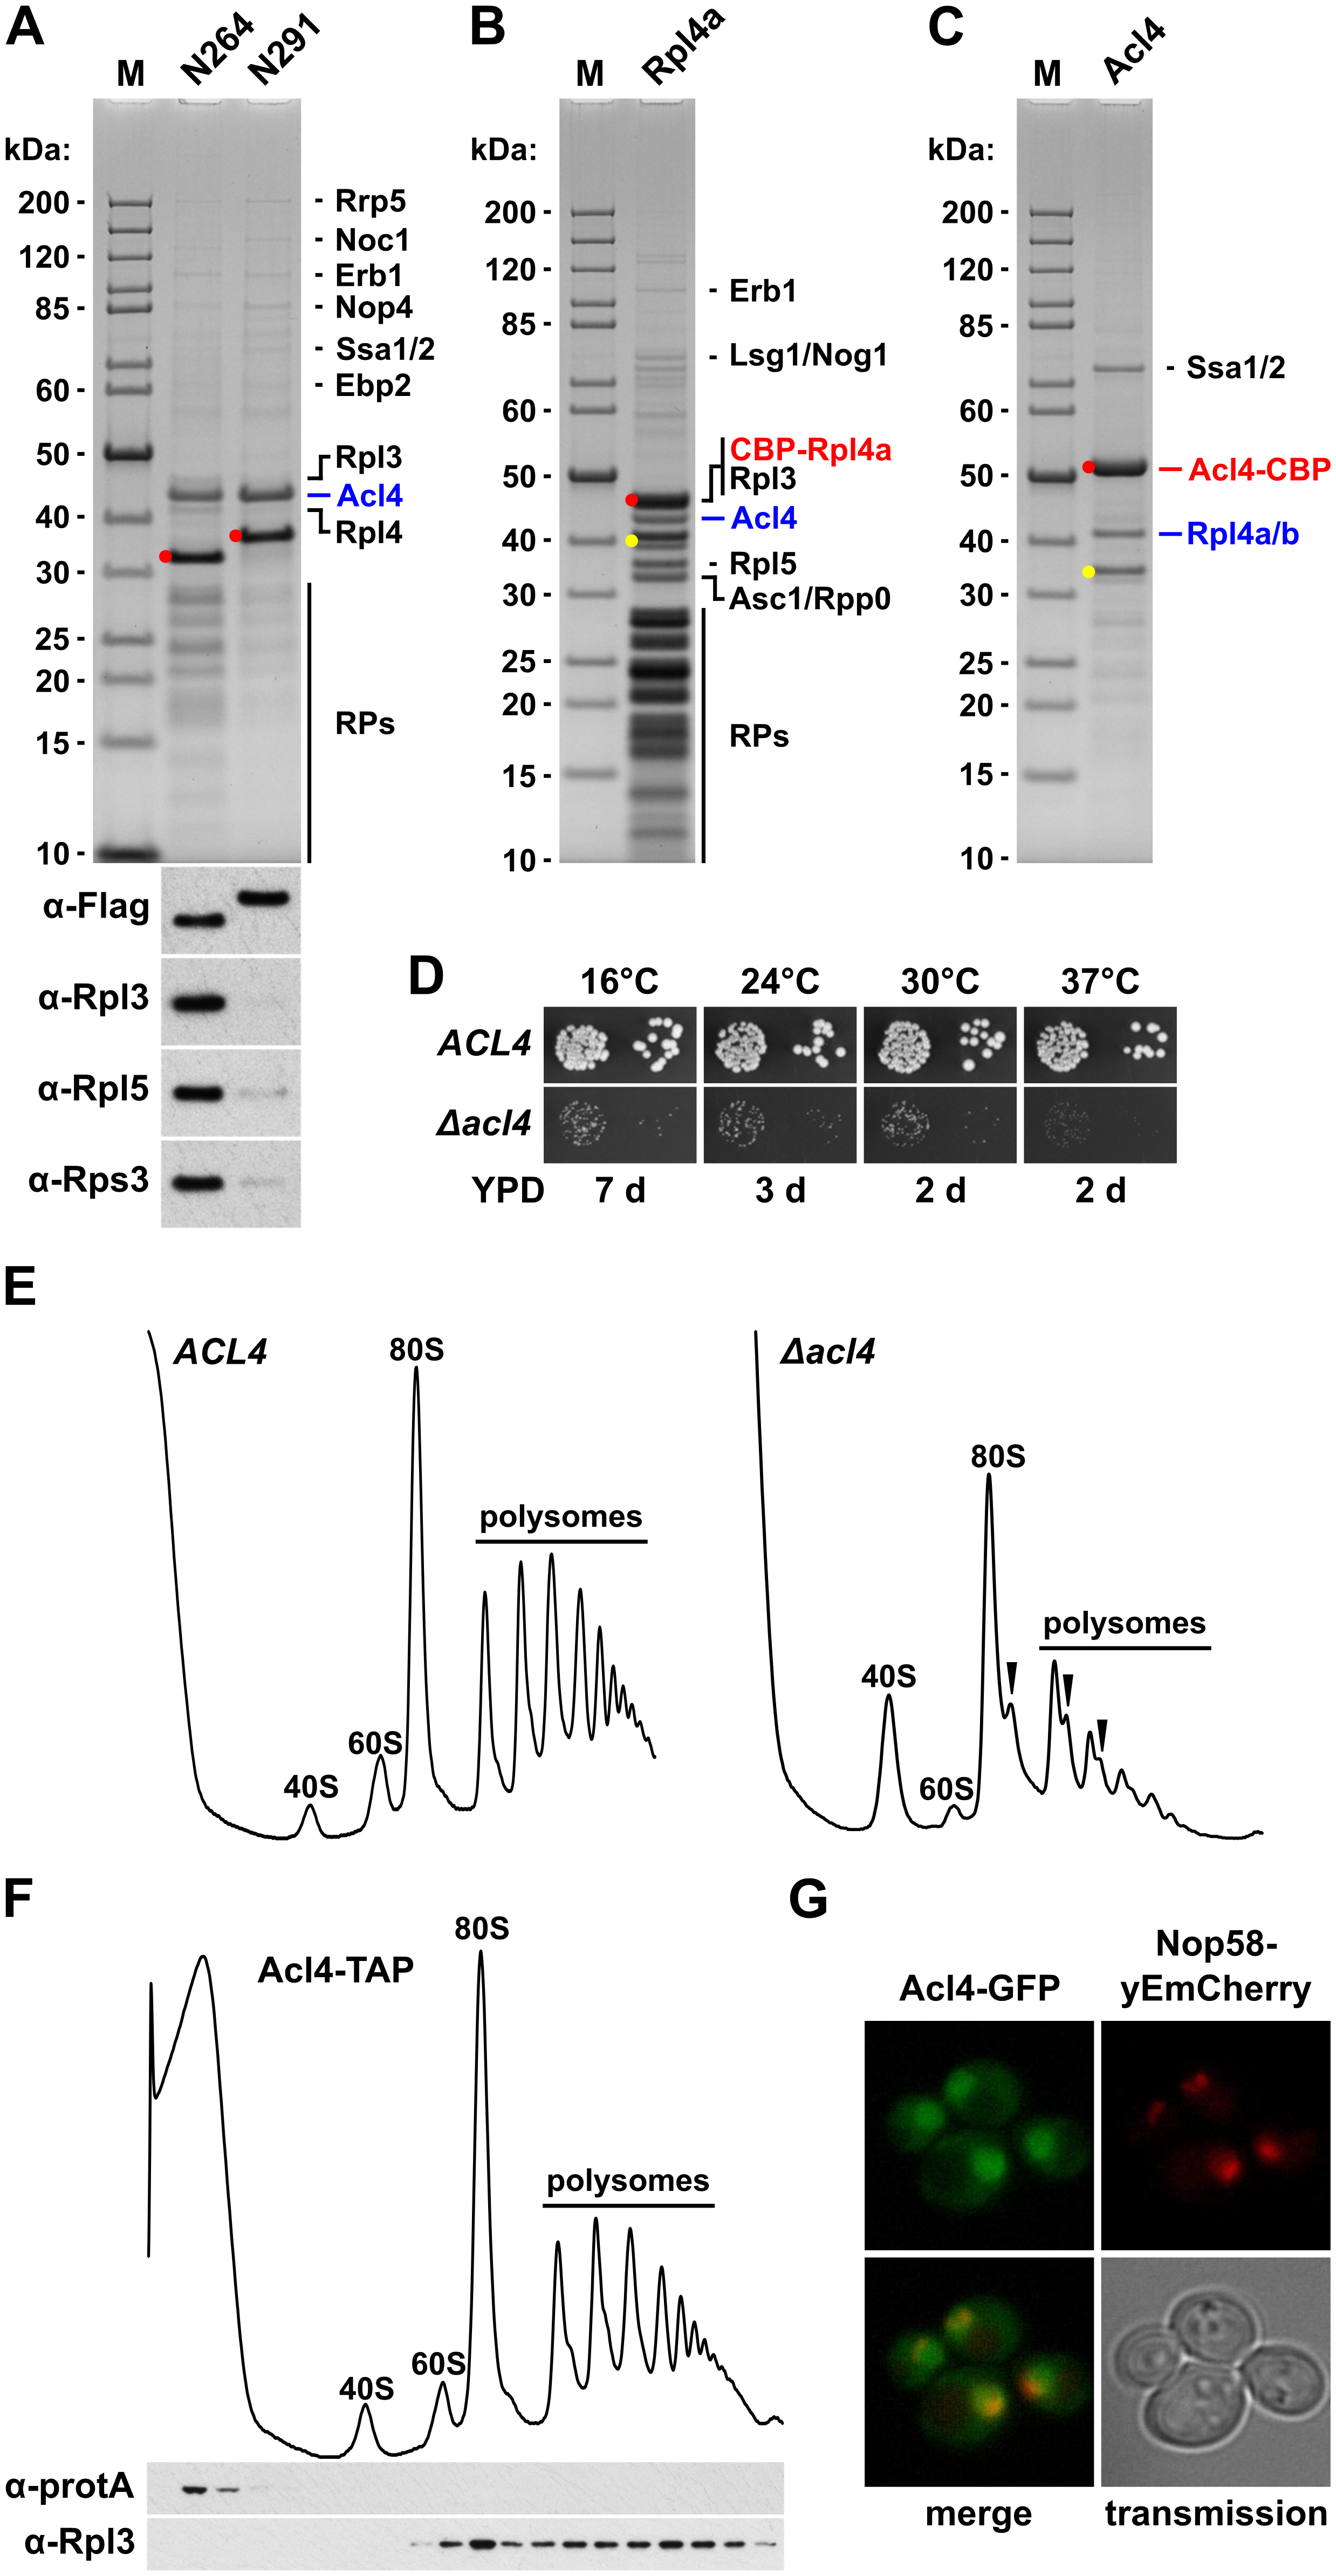 Rpl4 is associated with the specific binding partner Acl4.